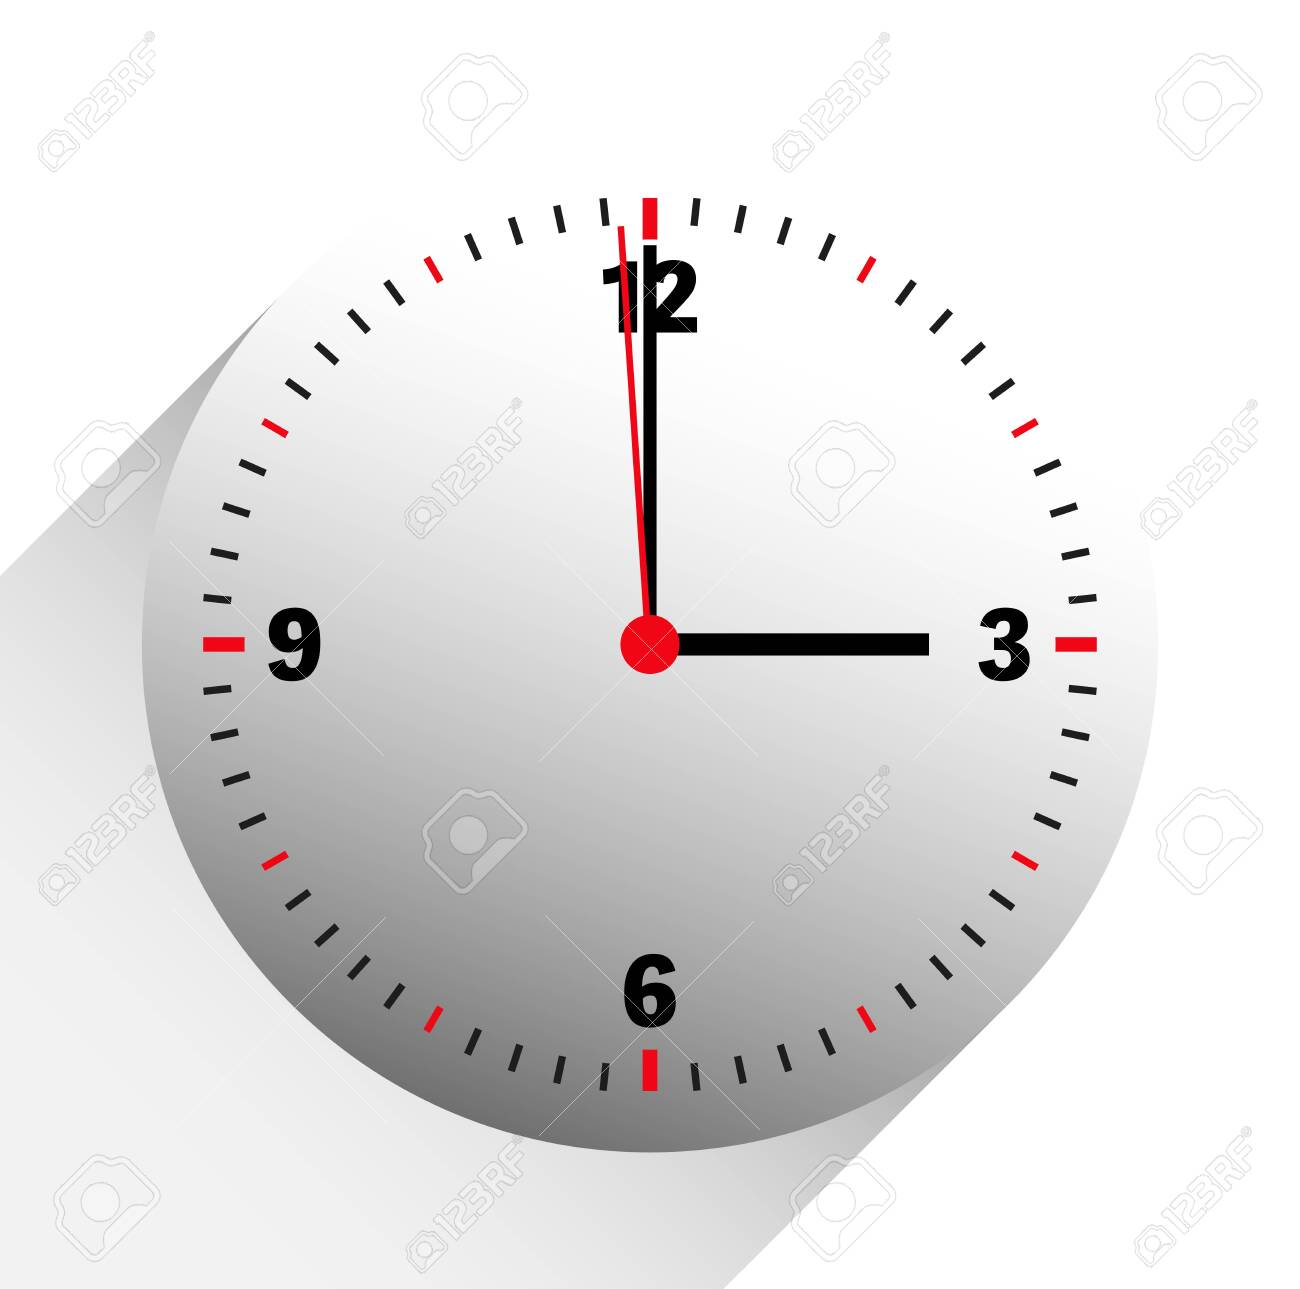 clock vector illustration showing 3 o'clock on white background - 124380843